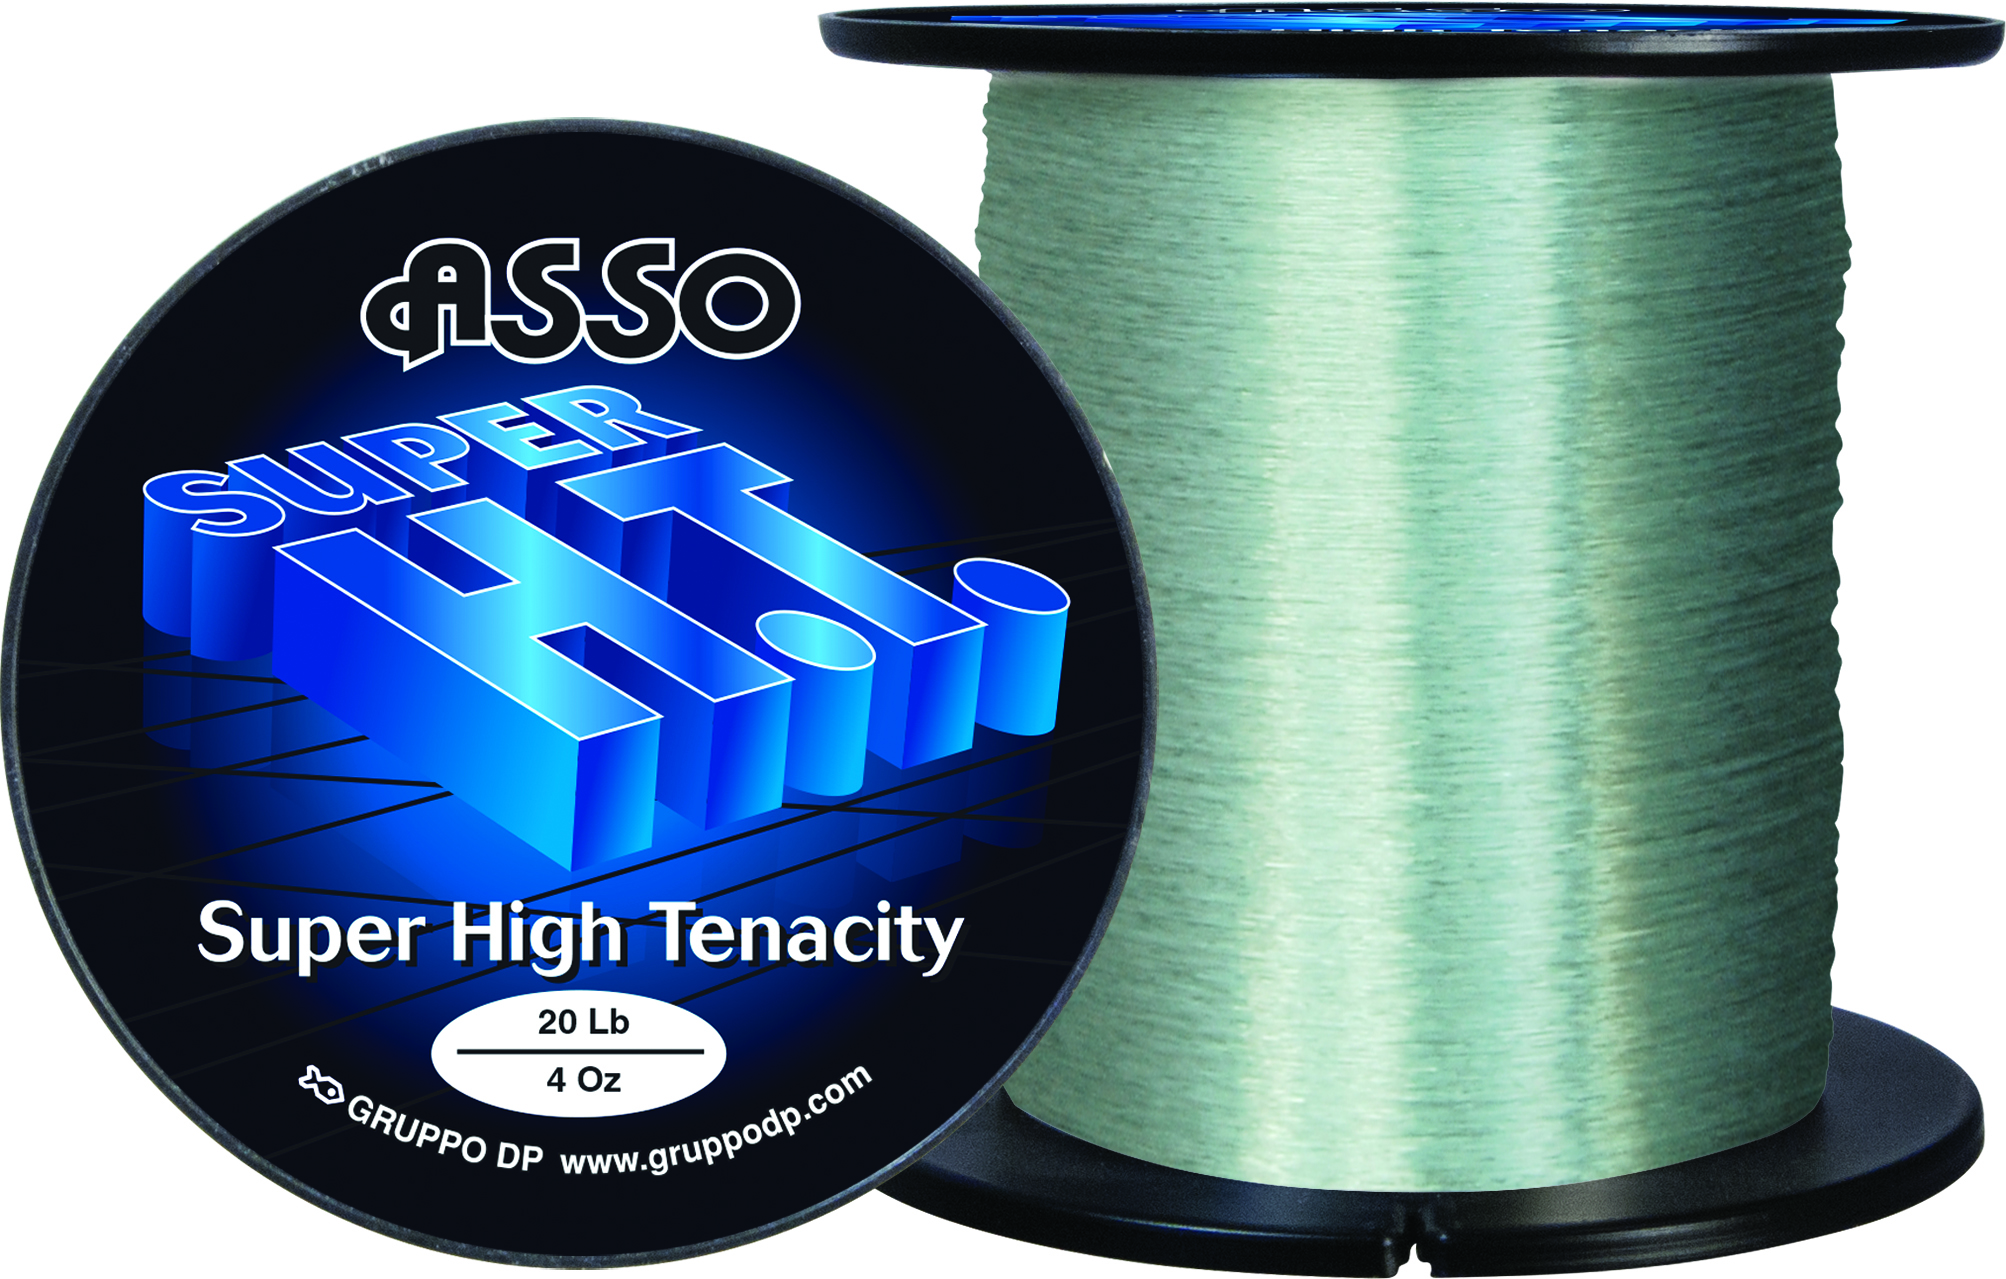 Asso Super HT High Tenacity fishing line